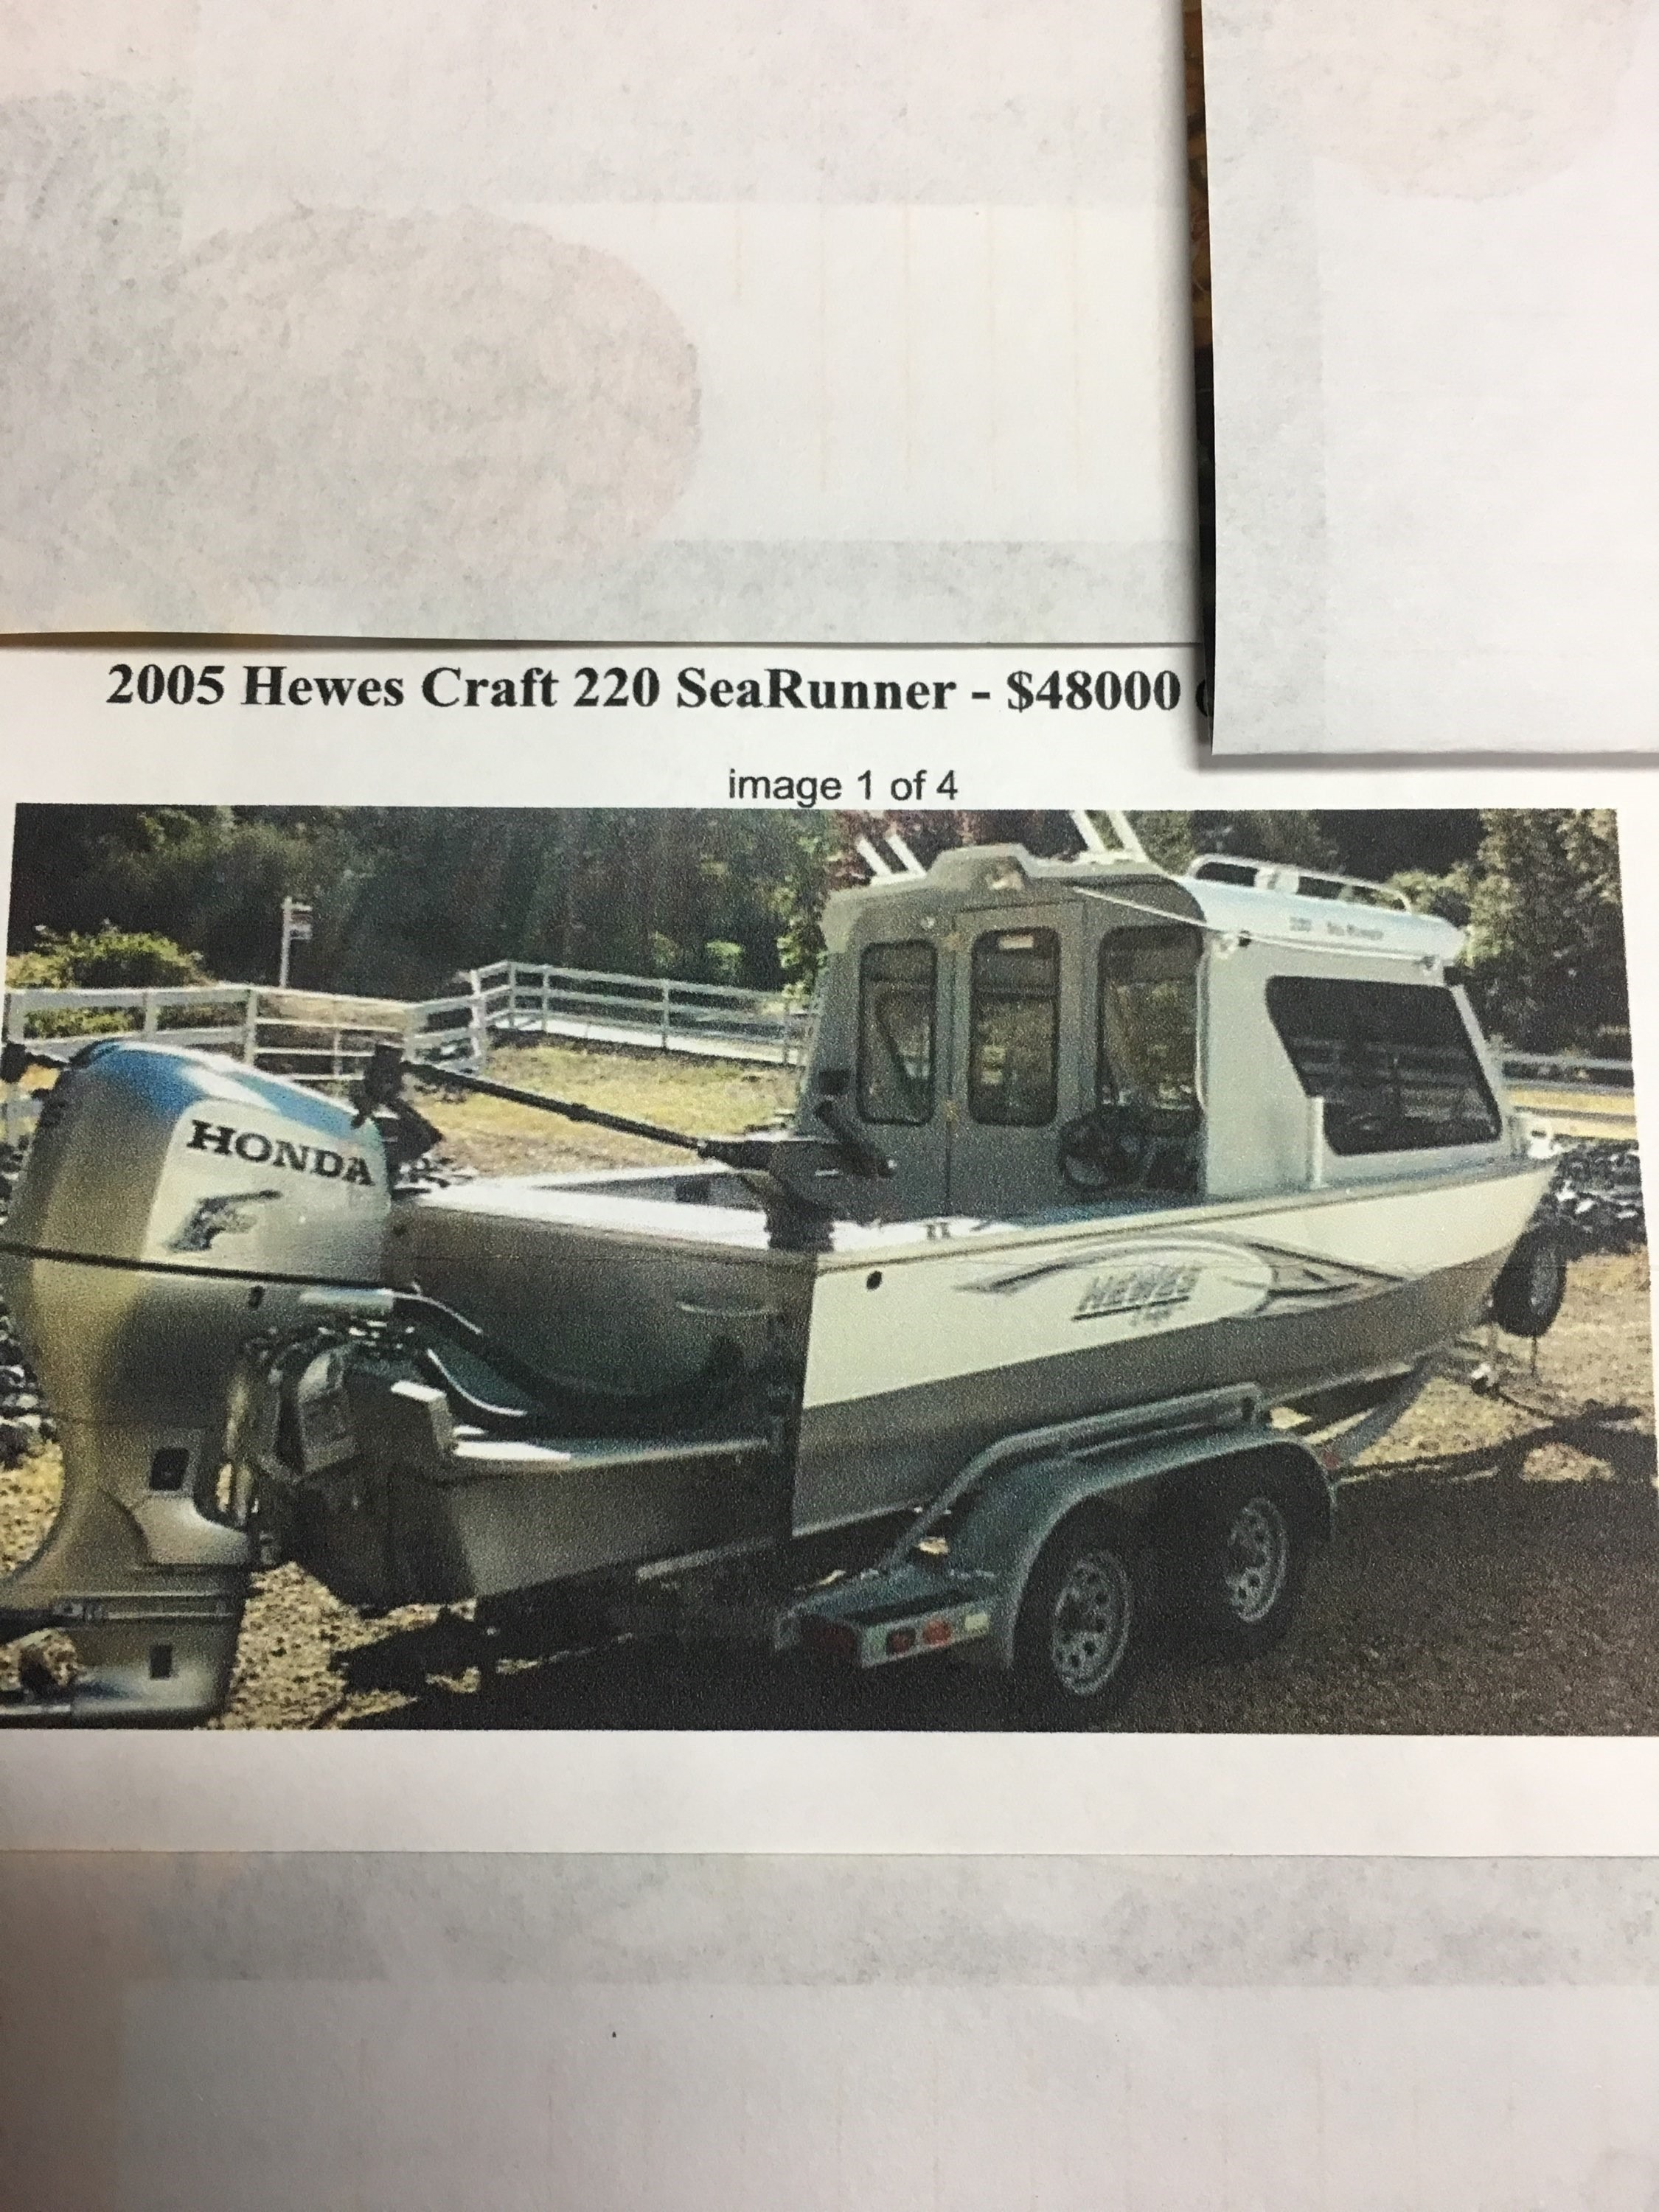 Hewescraft 220 Sea Runner